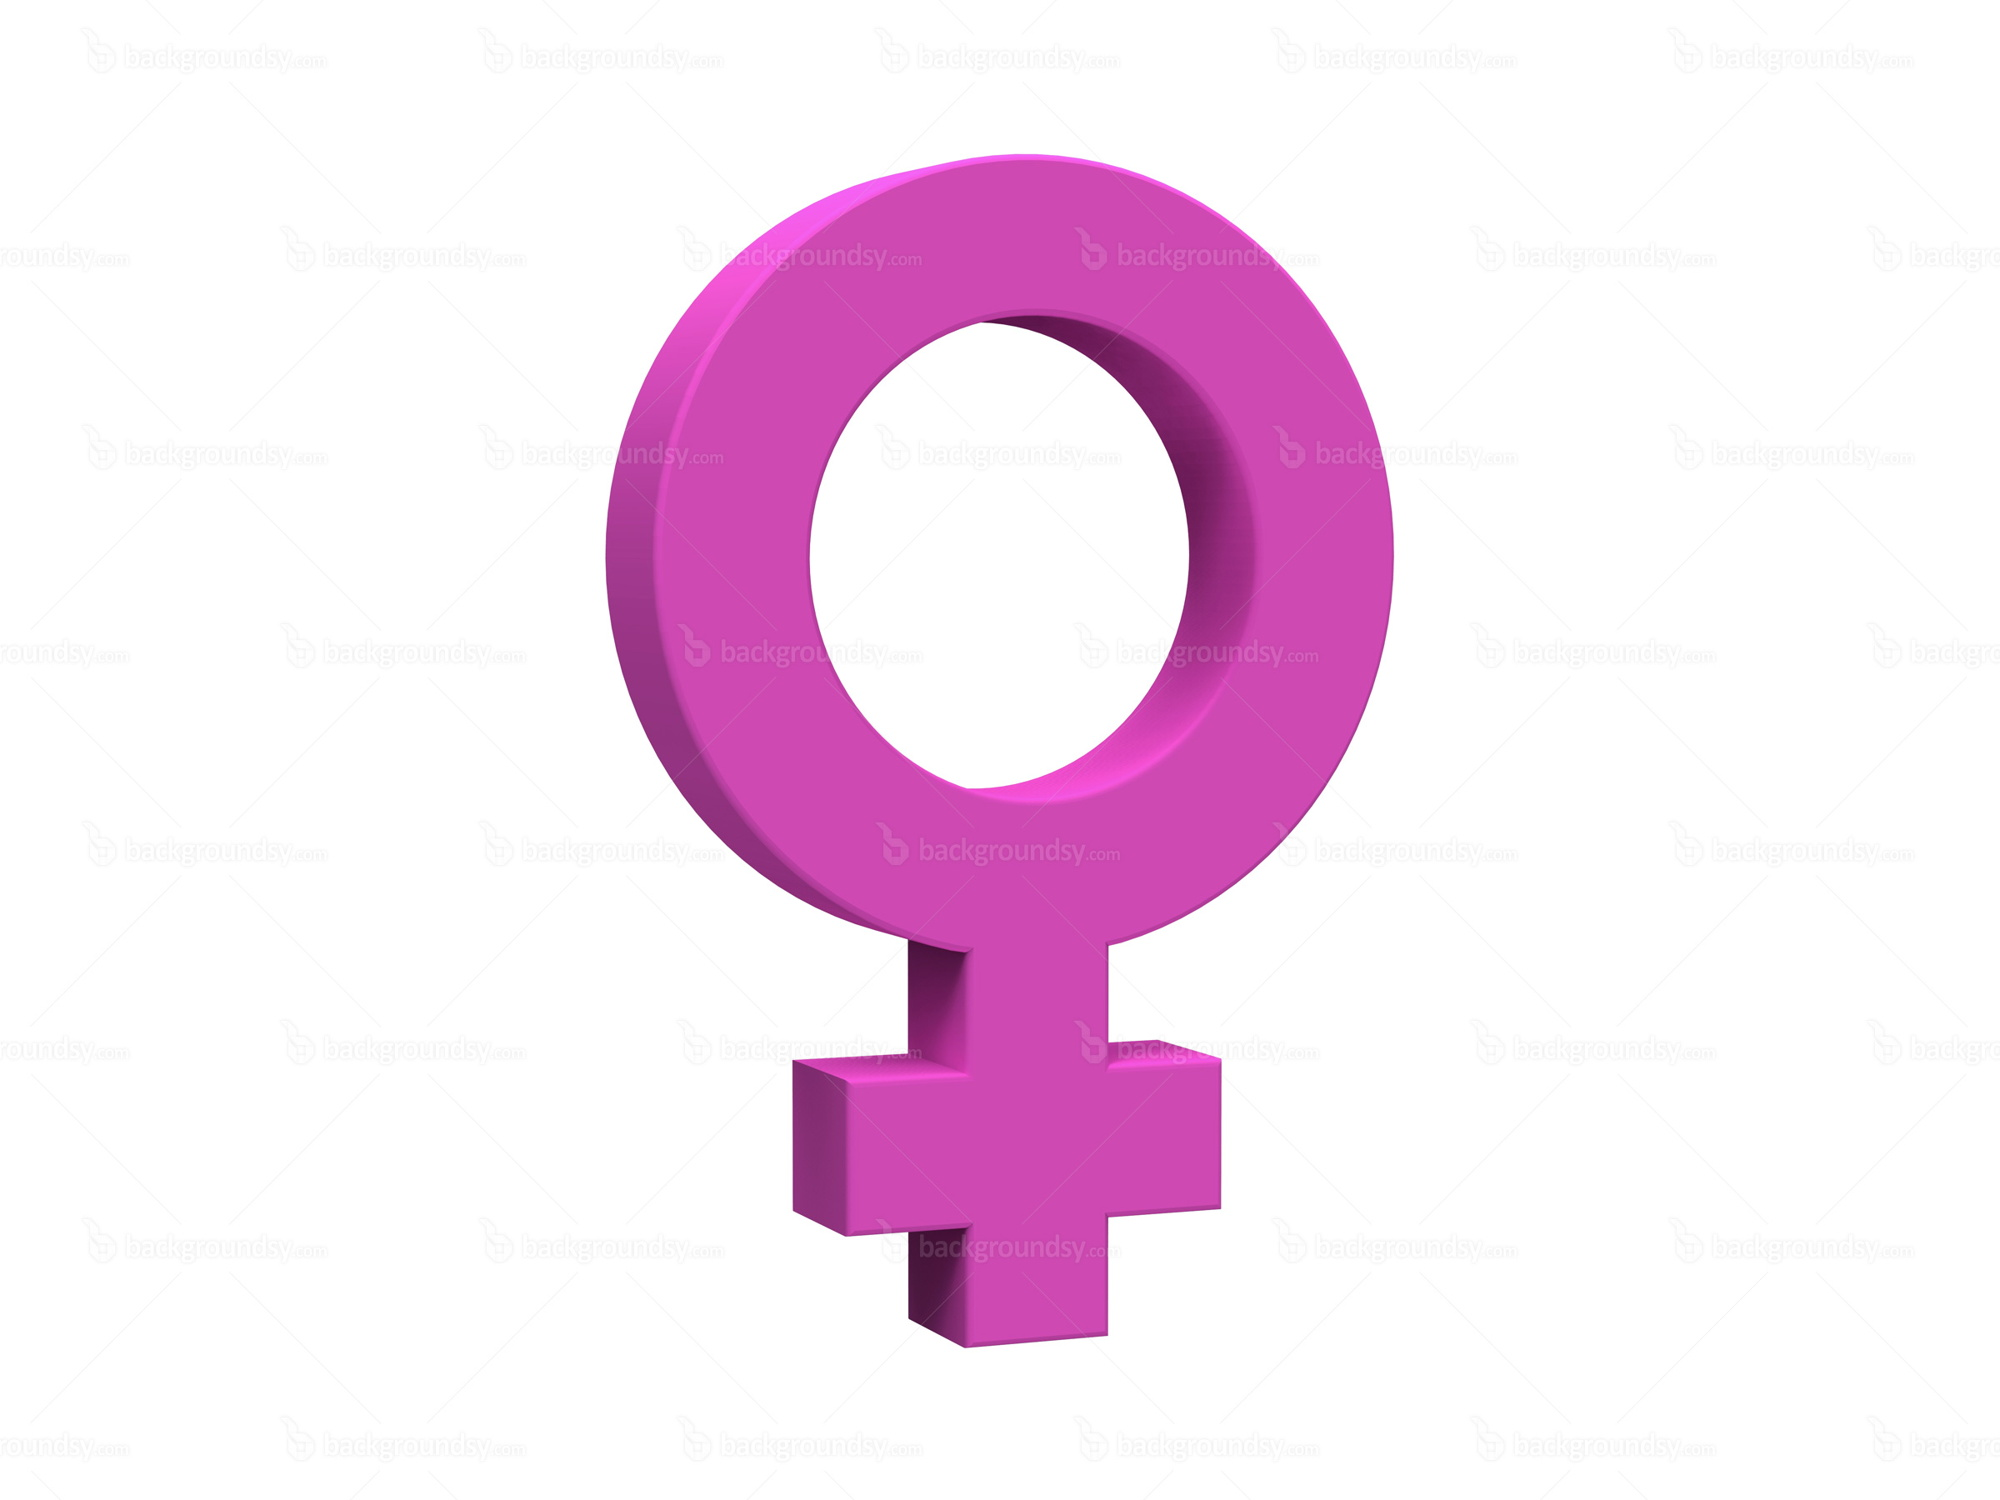 Female Symbol Backgroundsy Com